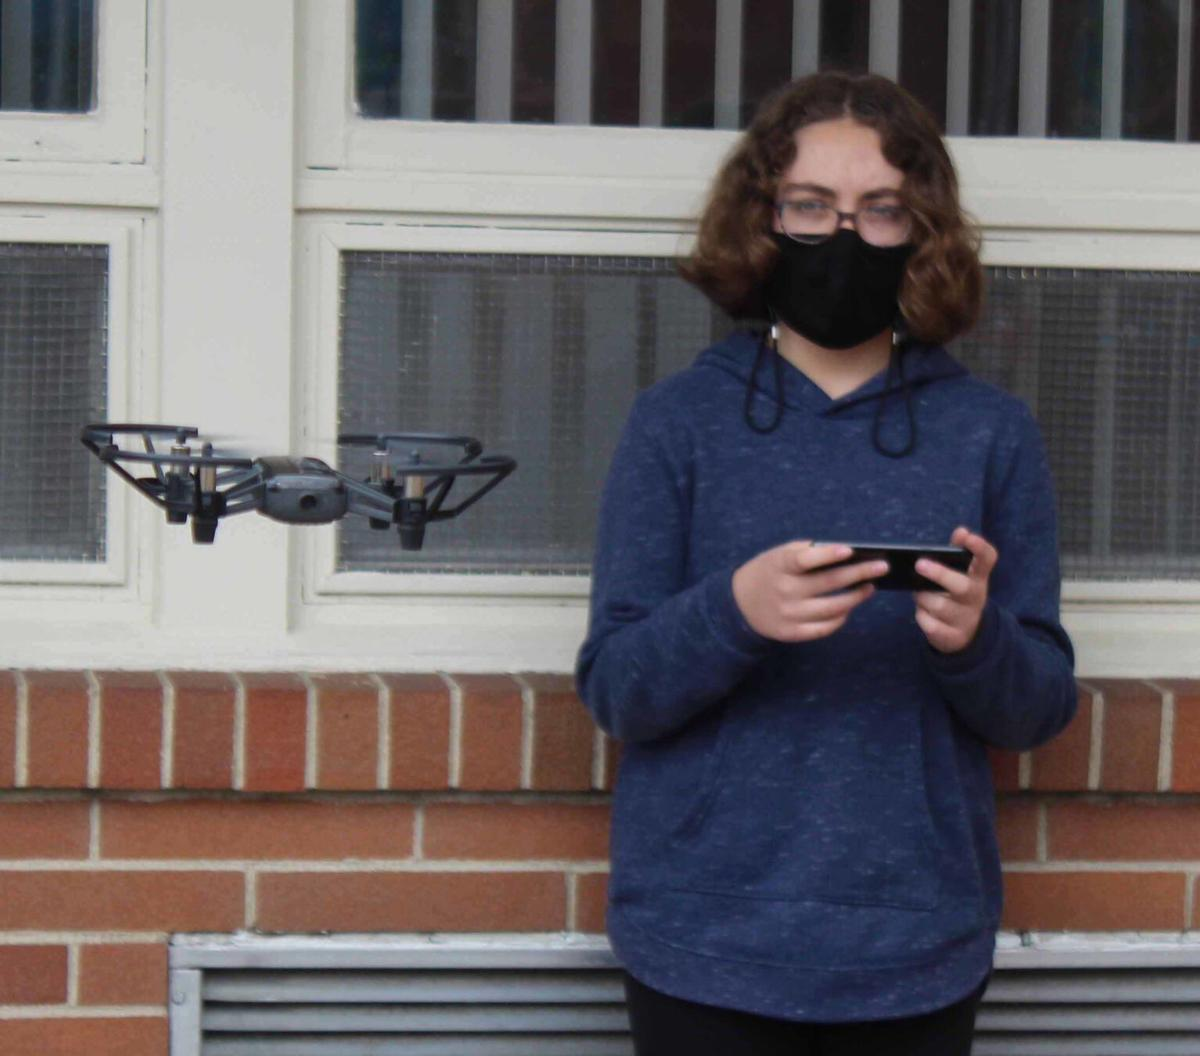 Olivia watches drone